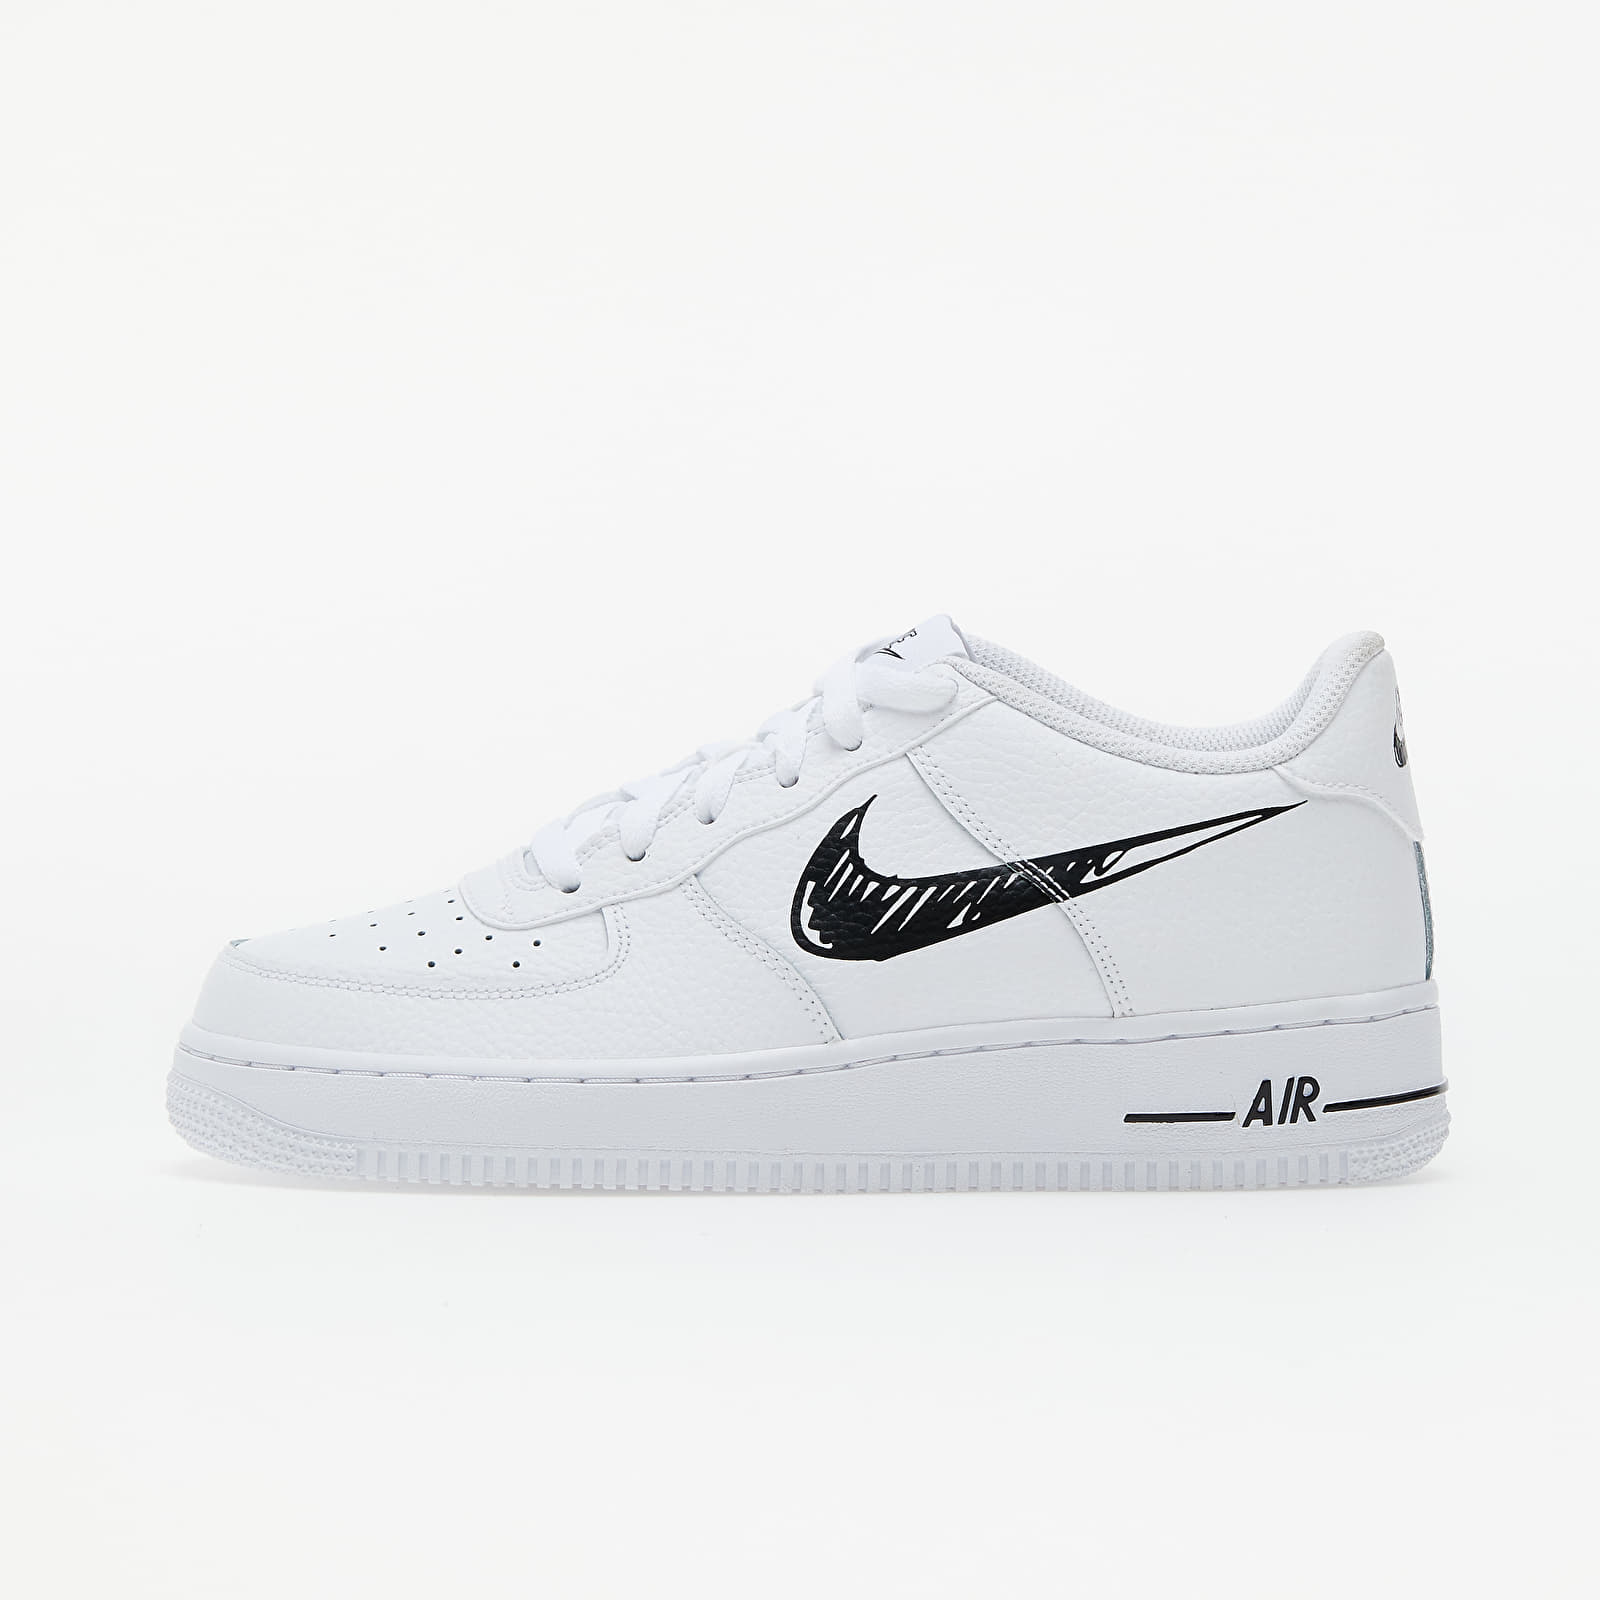 Nike Air Force 1 Low GS White/ Black-White EUR 37.5